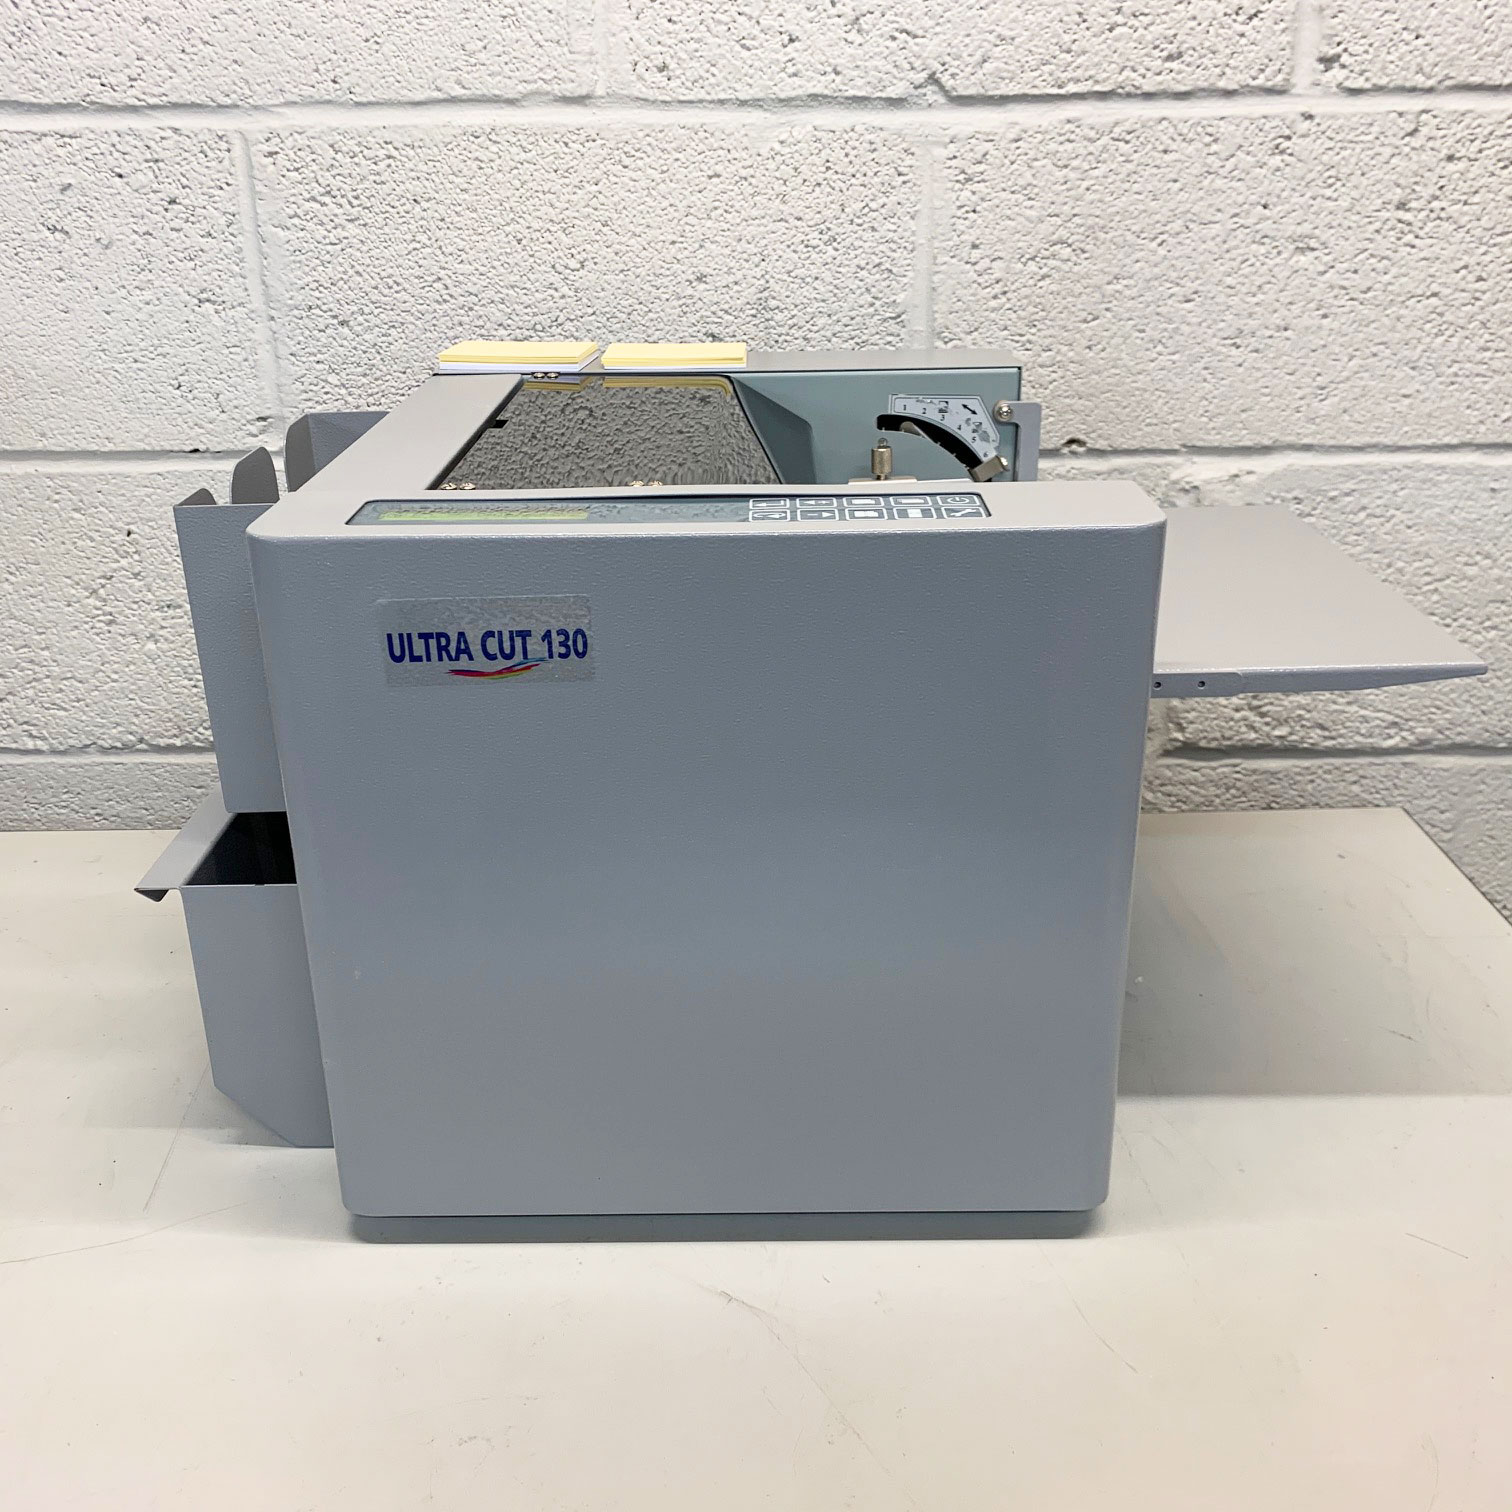 Ex-demo Ultra Cut 130 Business Card Cutter - 405205